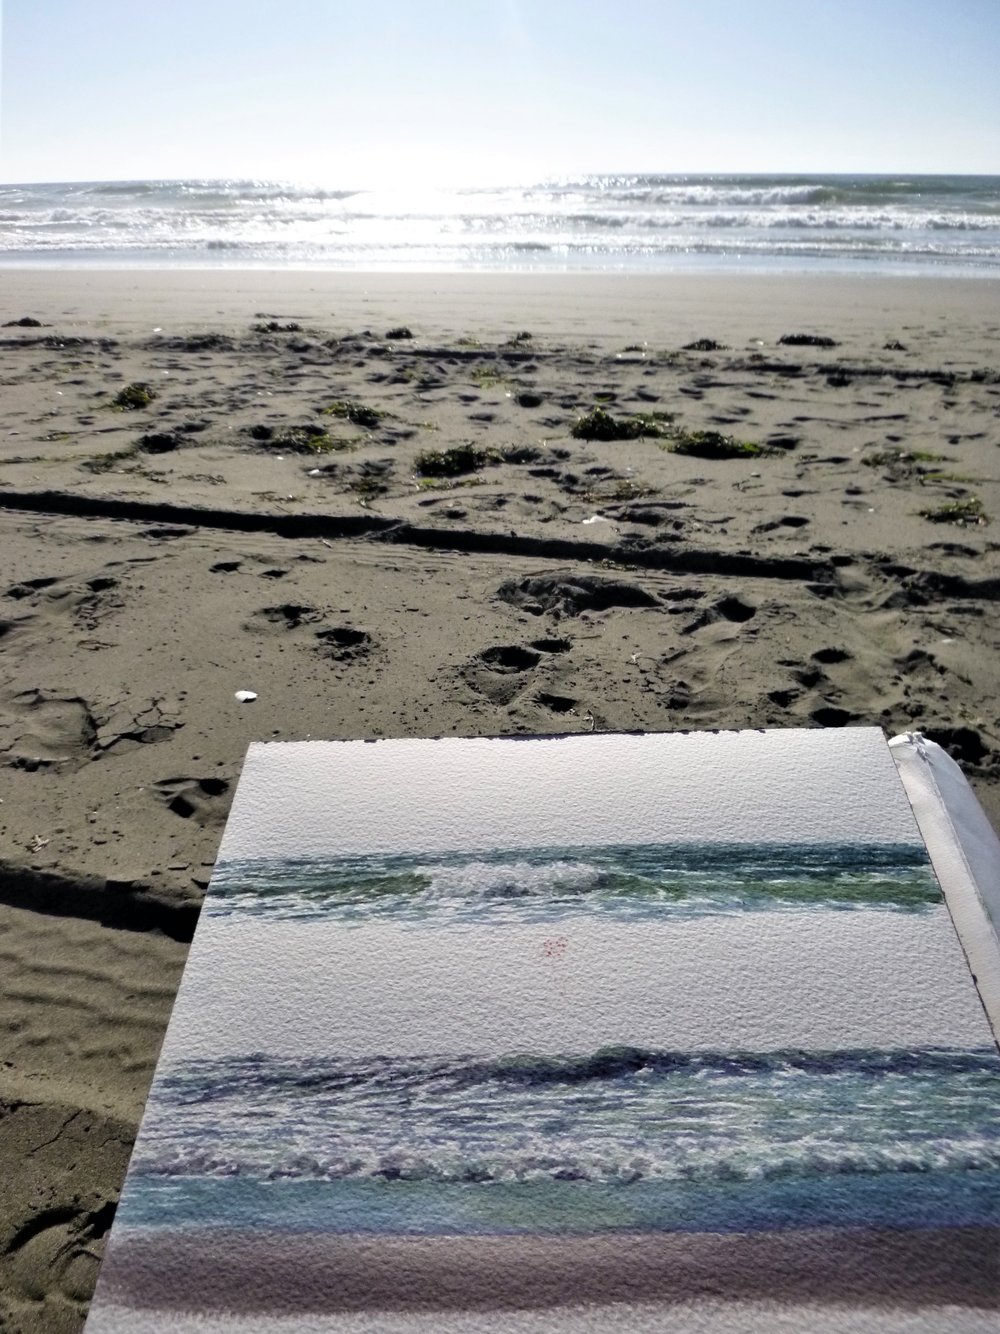 A sketch pad on my lap, on the beach, as I attempt to capture the energy and the light in watercolor...